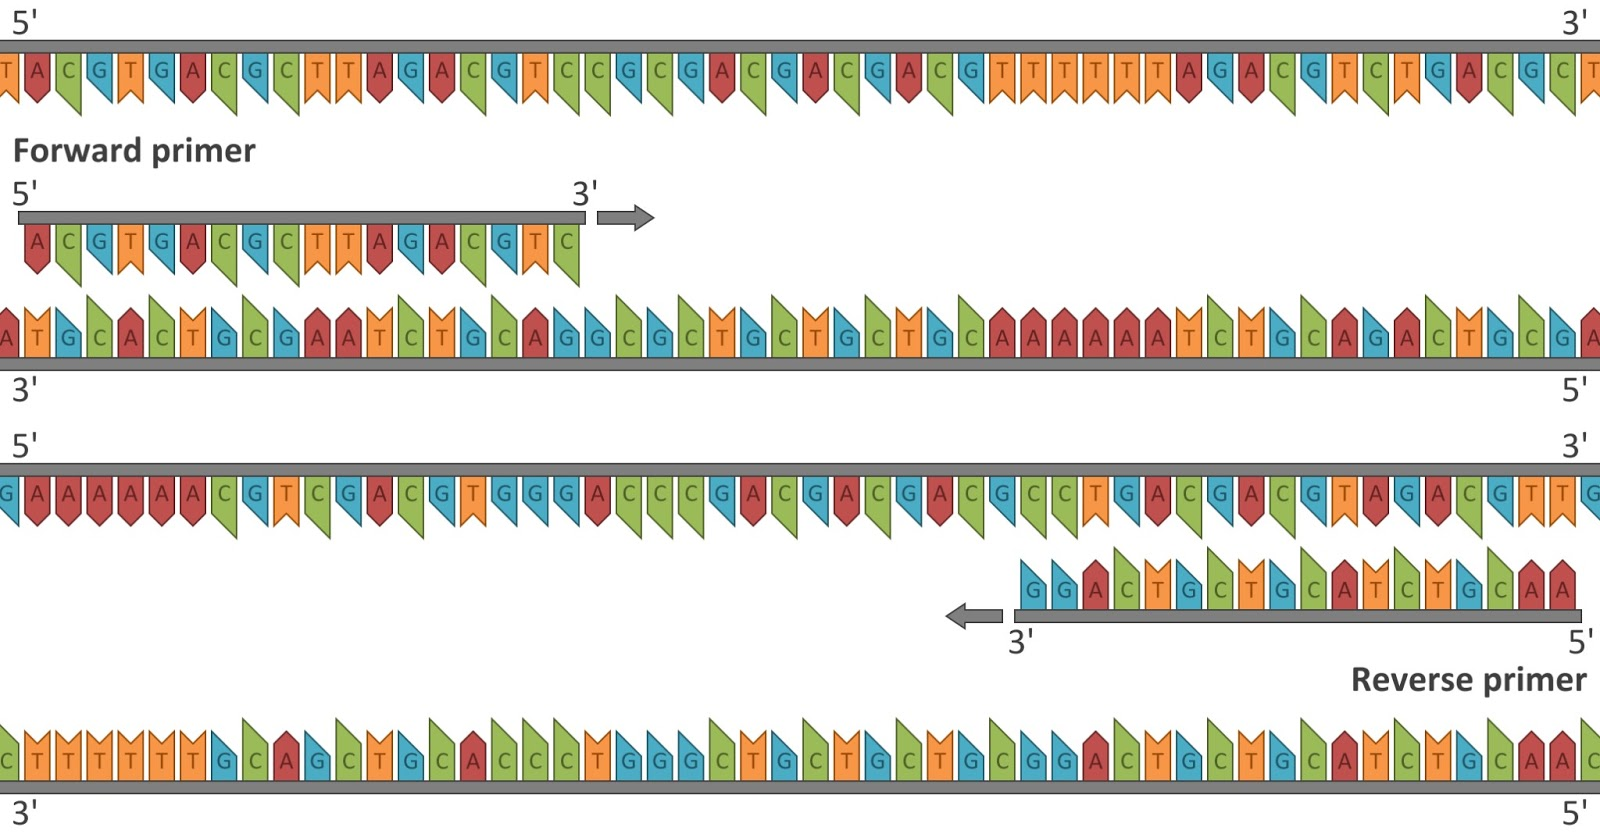 Polymerase Chain Reaction Diagram Household Light Switch Wiring Calculated Images Need To Teach Pcr